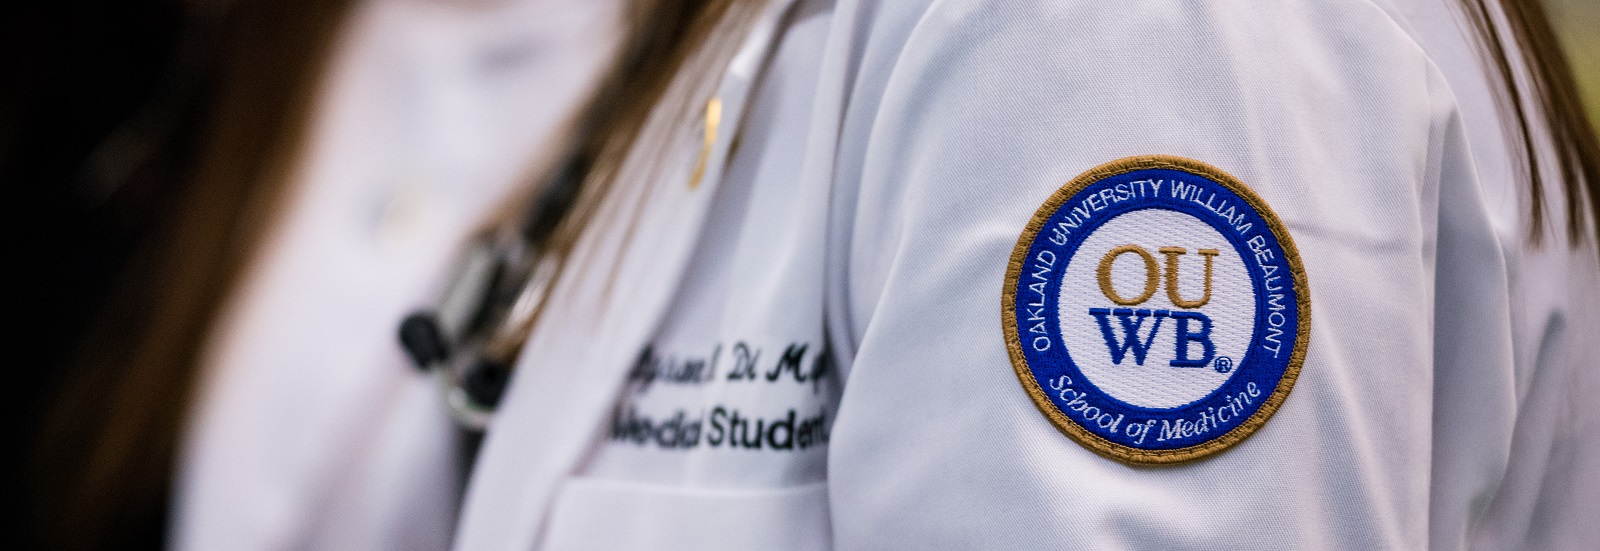 A close-up photo of a white coat with the OUWB patch in focus.